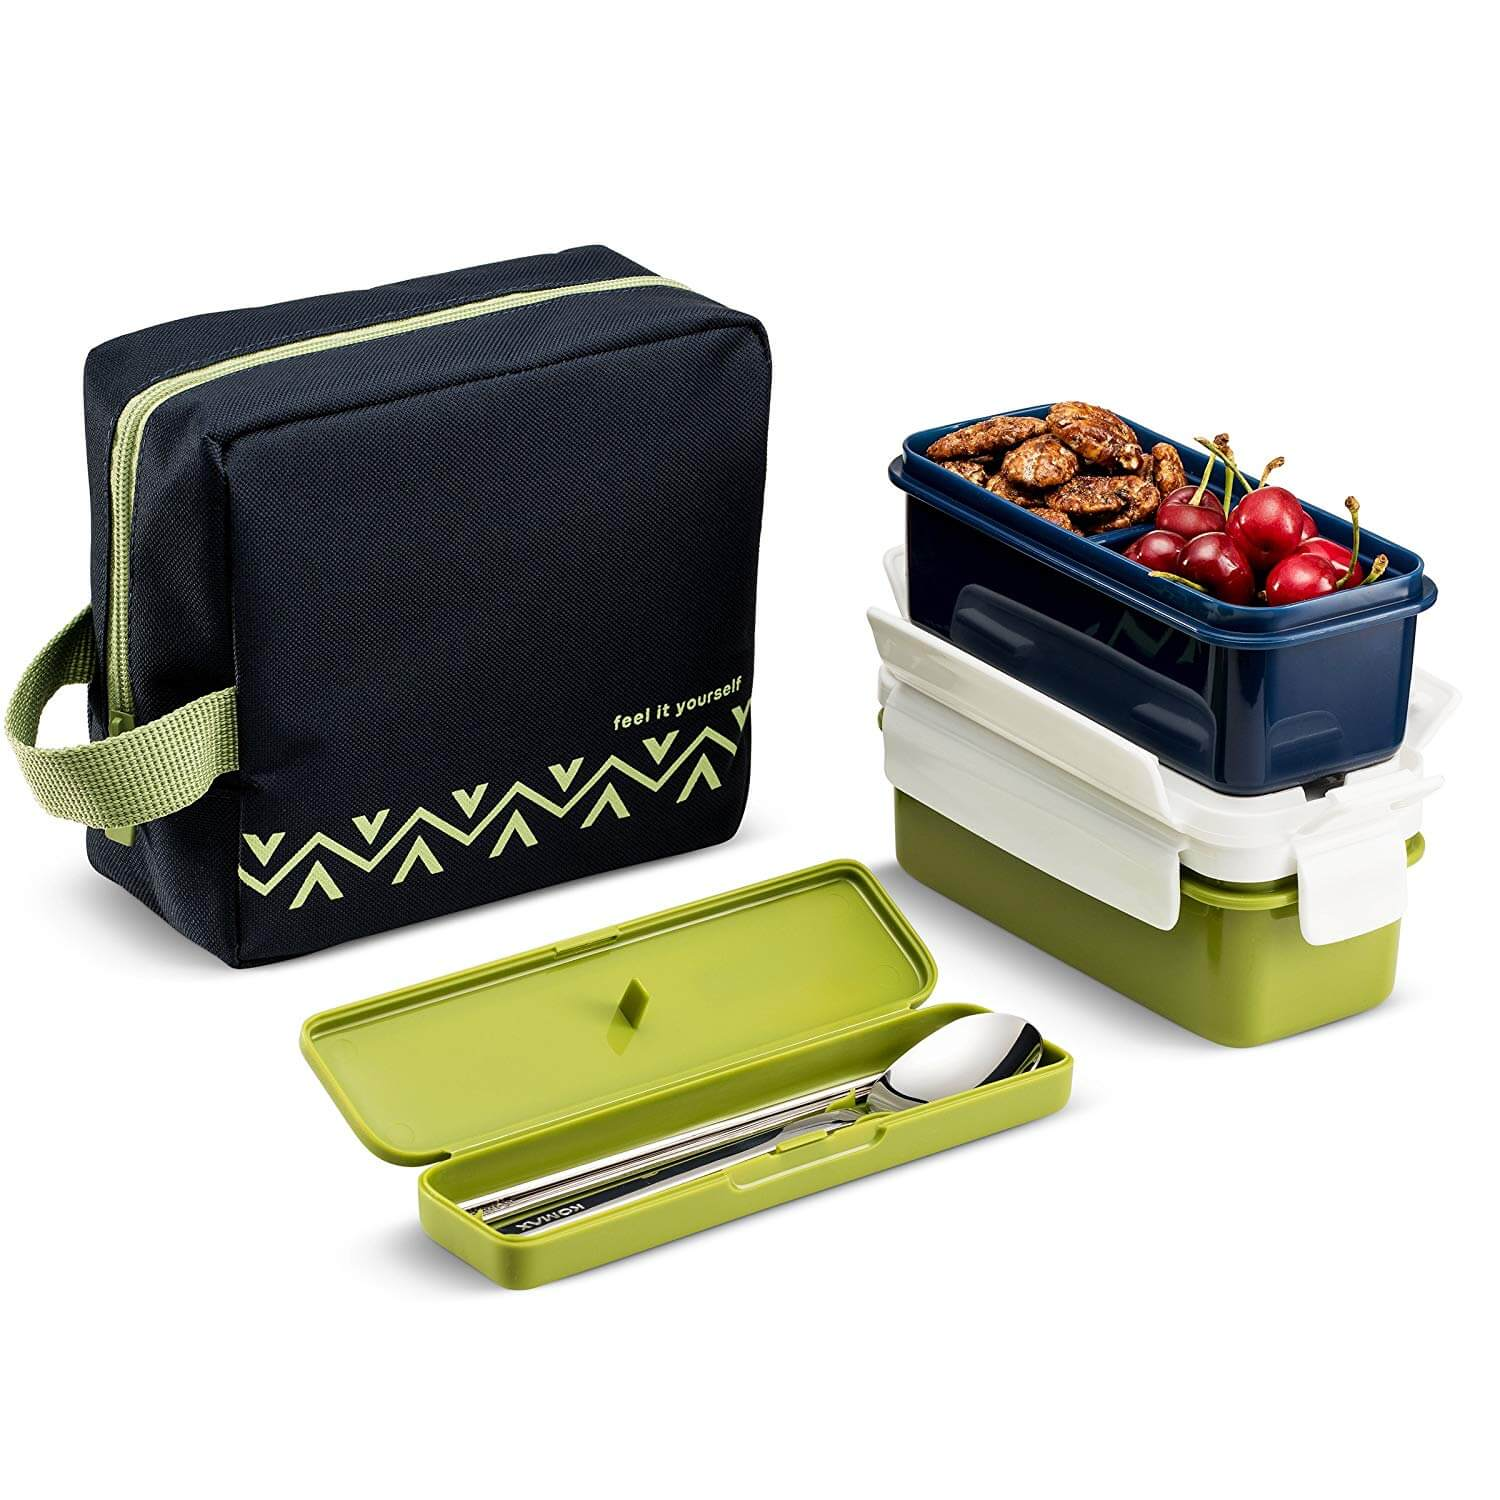 Komax Lunchmate Bento Lunch Box Kit